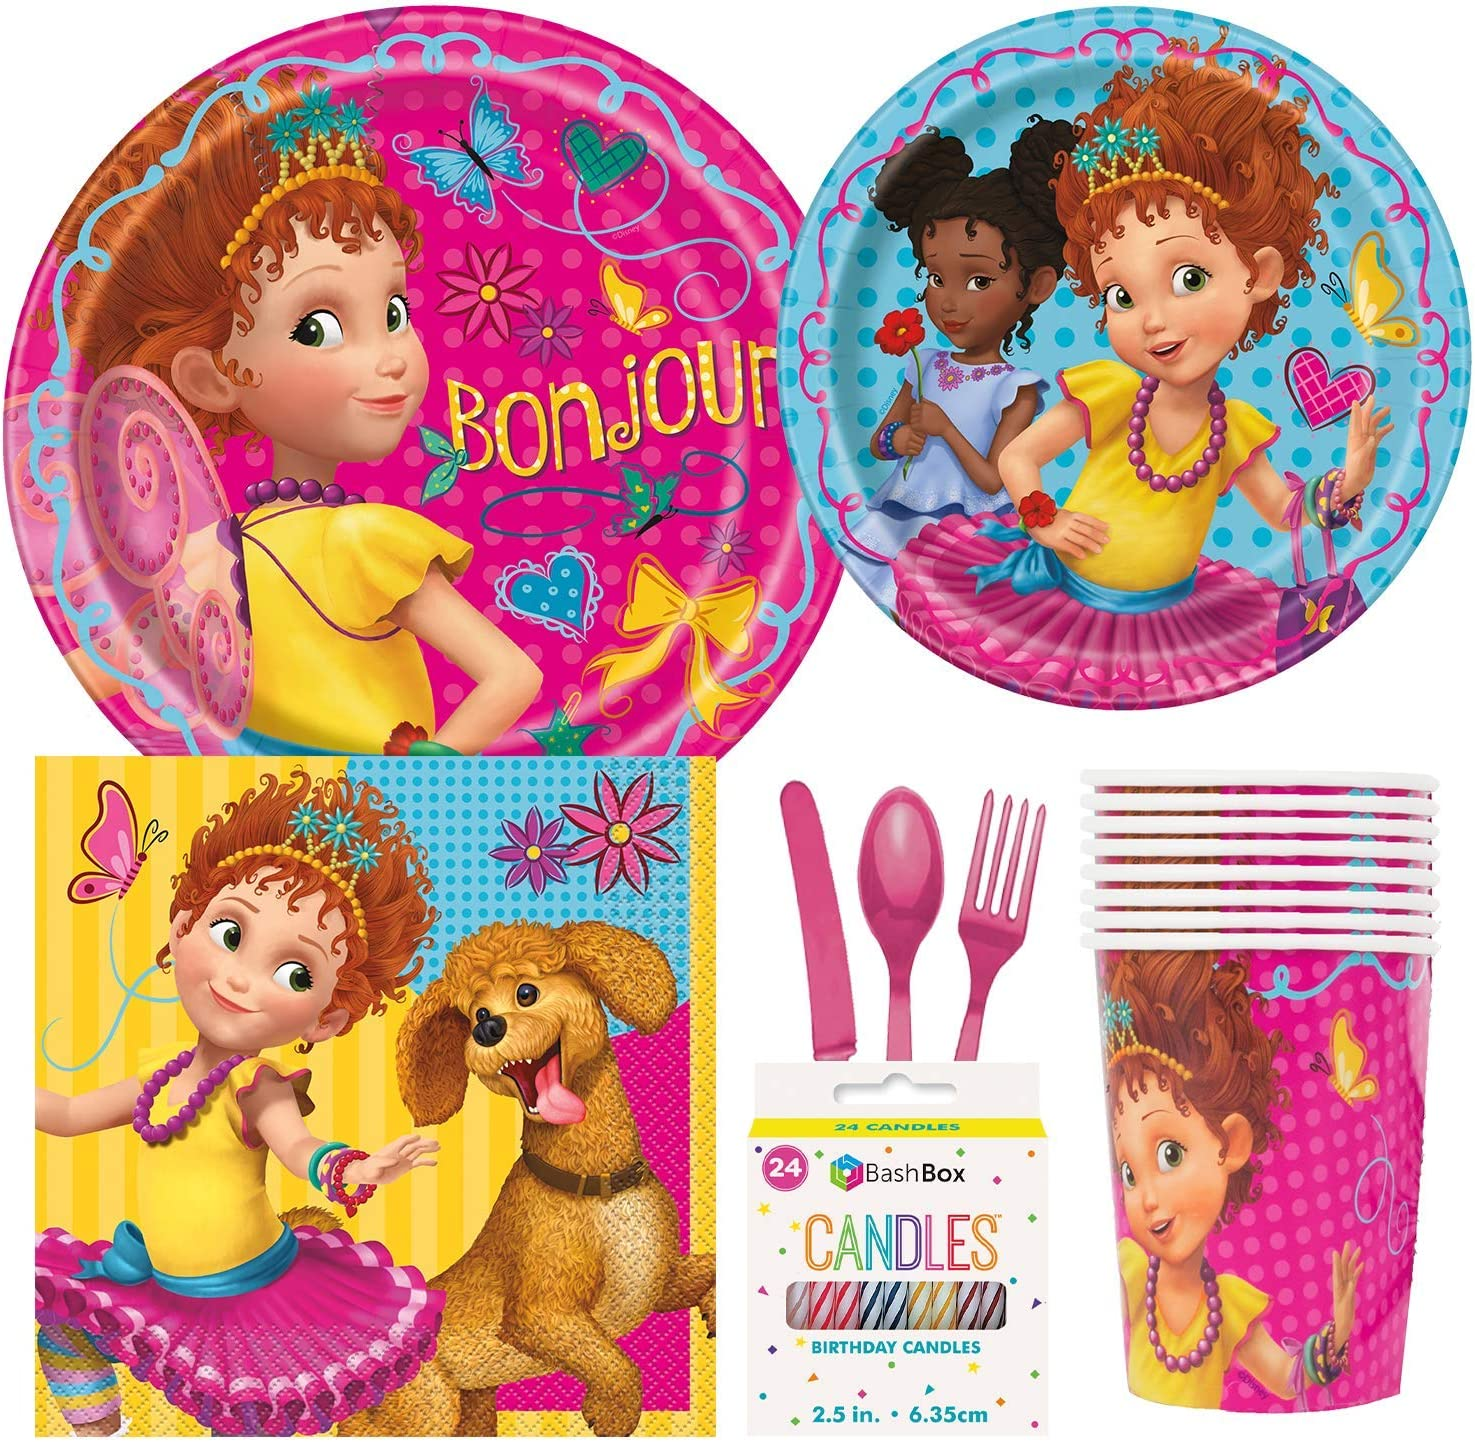 Bashbox Disney Fancy Nancy Clancy Birthday Party Supplies Pack Including Cake Lunch Plates Cutlery Cups Napkins 8 Guests Plus Bonus Candles Amazon Co Uk Toys Games